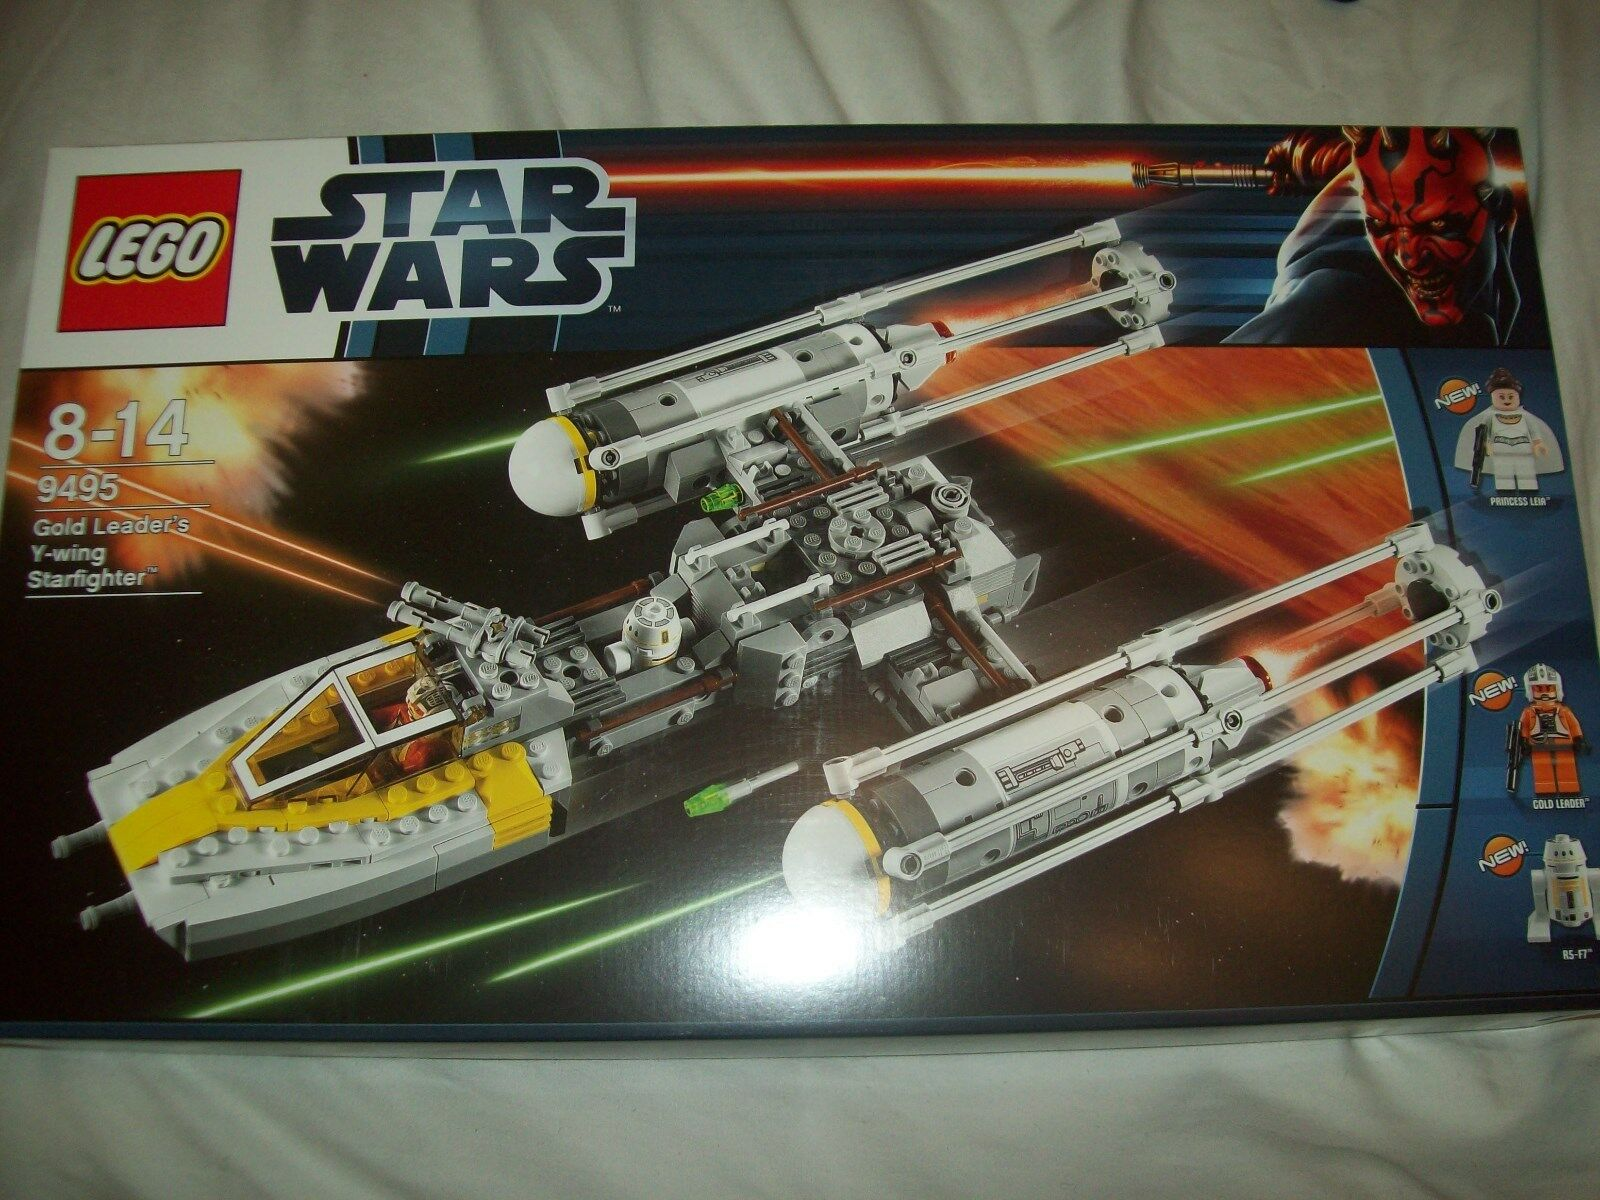 Lego Star Wars - Gold Leader's Y-Wing Starfighter - Set 9495 (BNIB)